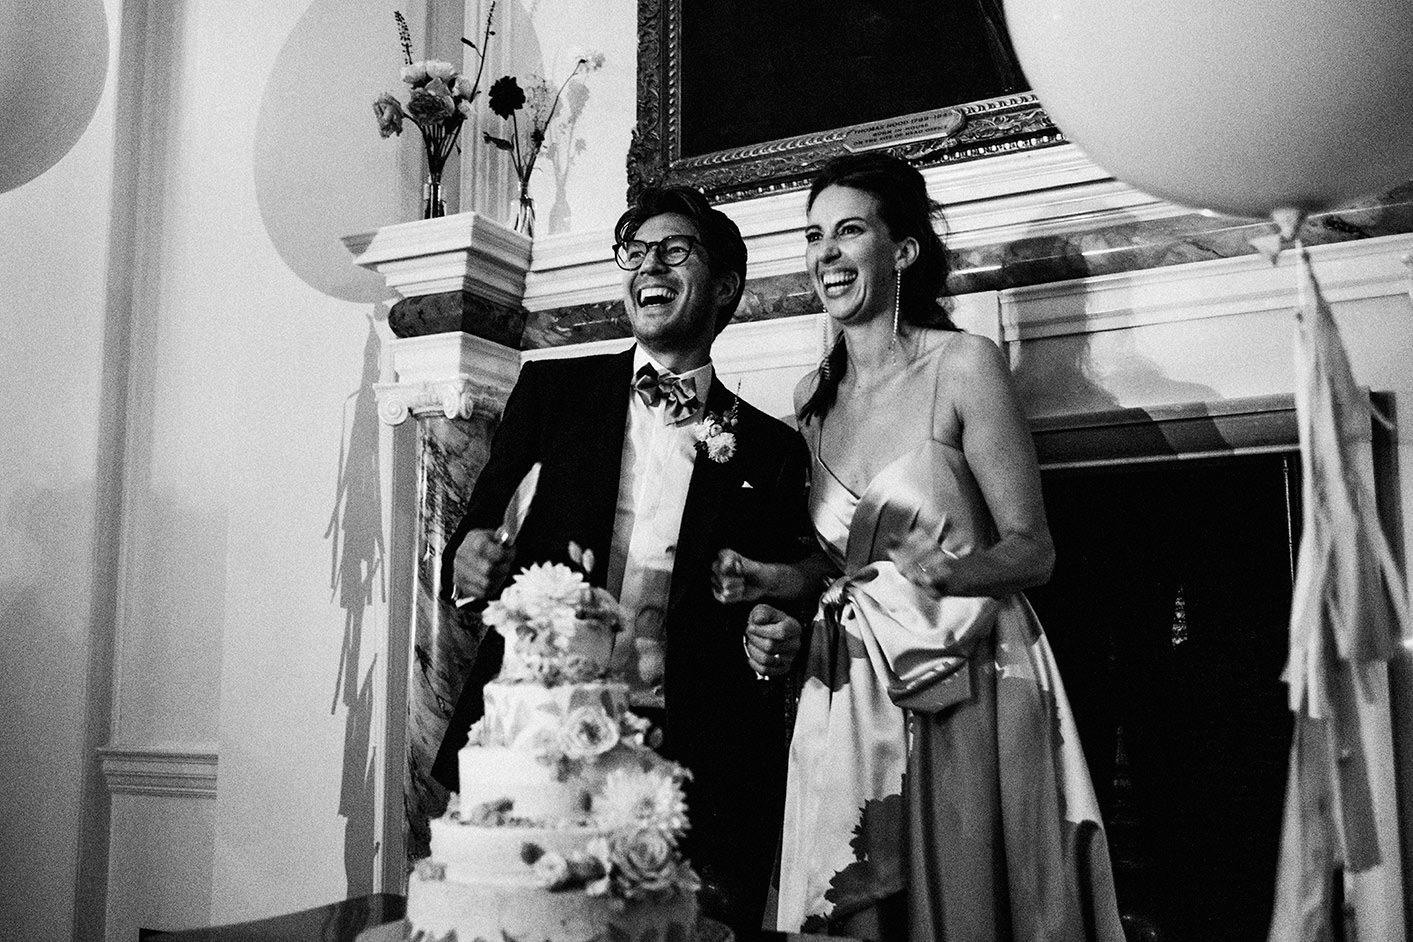 The Ned Wedding Photography London cutting of cake. Black and white wedding photo.